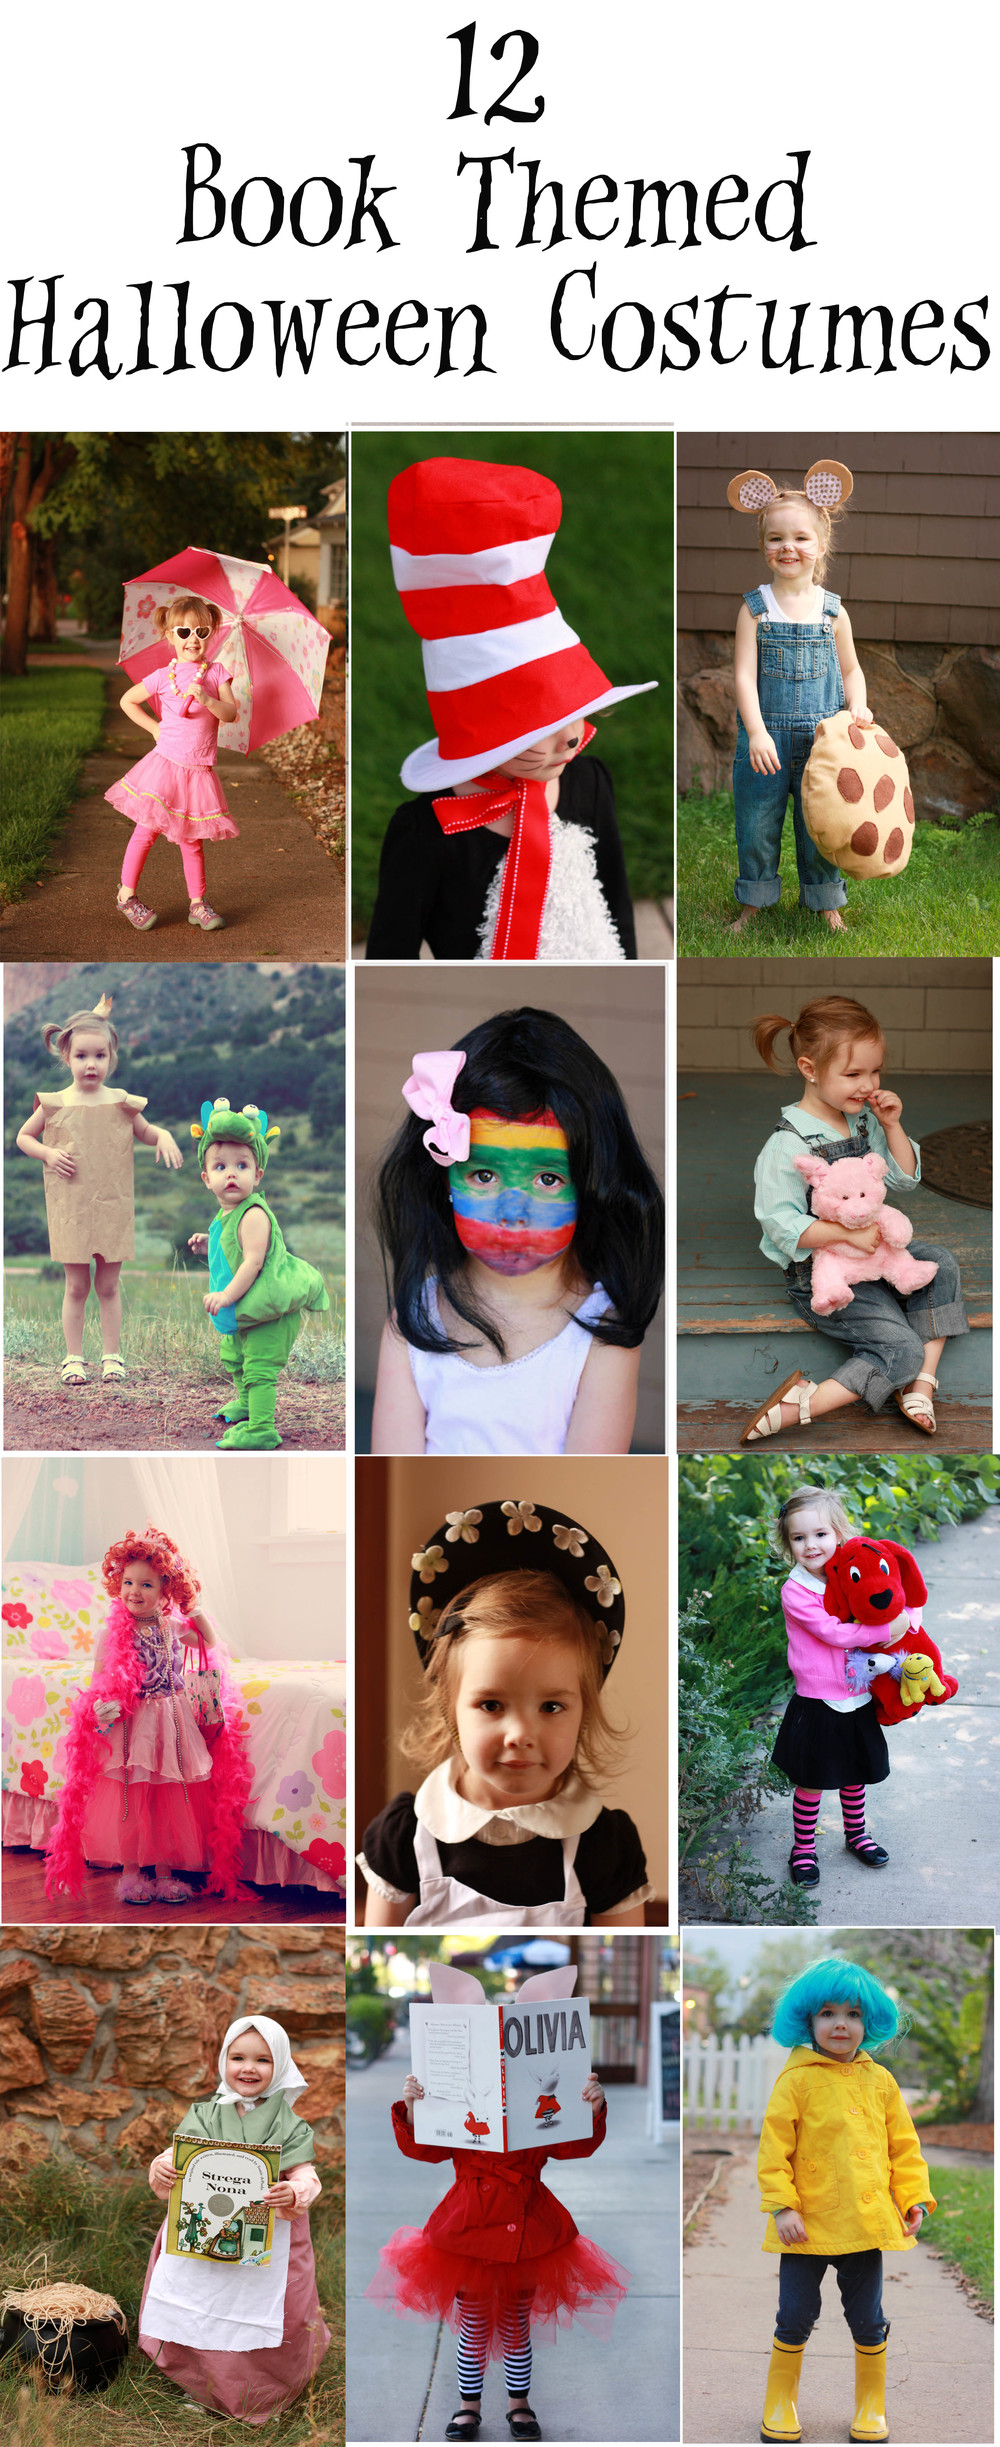 12 Book Themed Halloween Costumes!  sc 1 st  Seeker of Happiness - Squarespace & 12 Book Themed Halloween Costumes! u2014 Seeker of Happiness